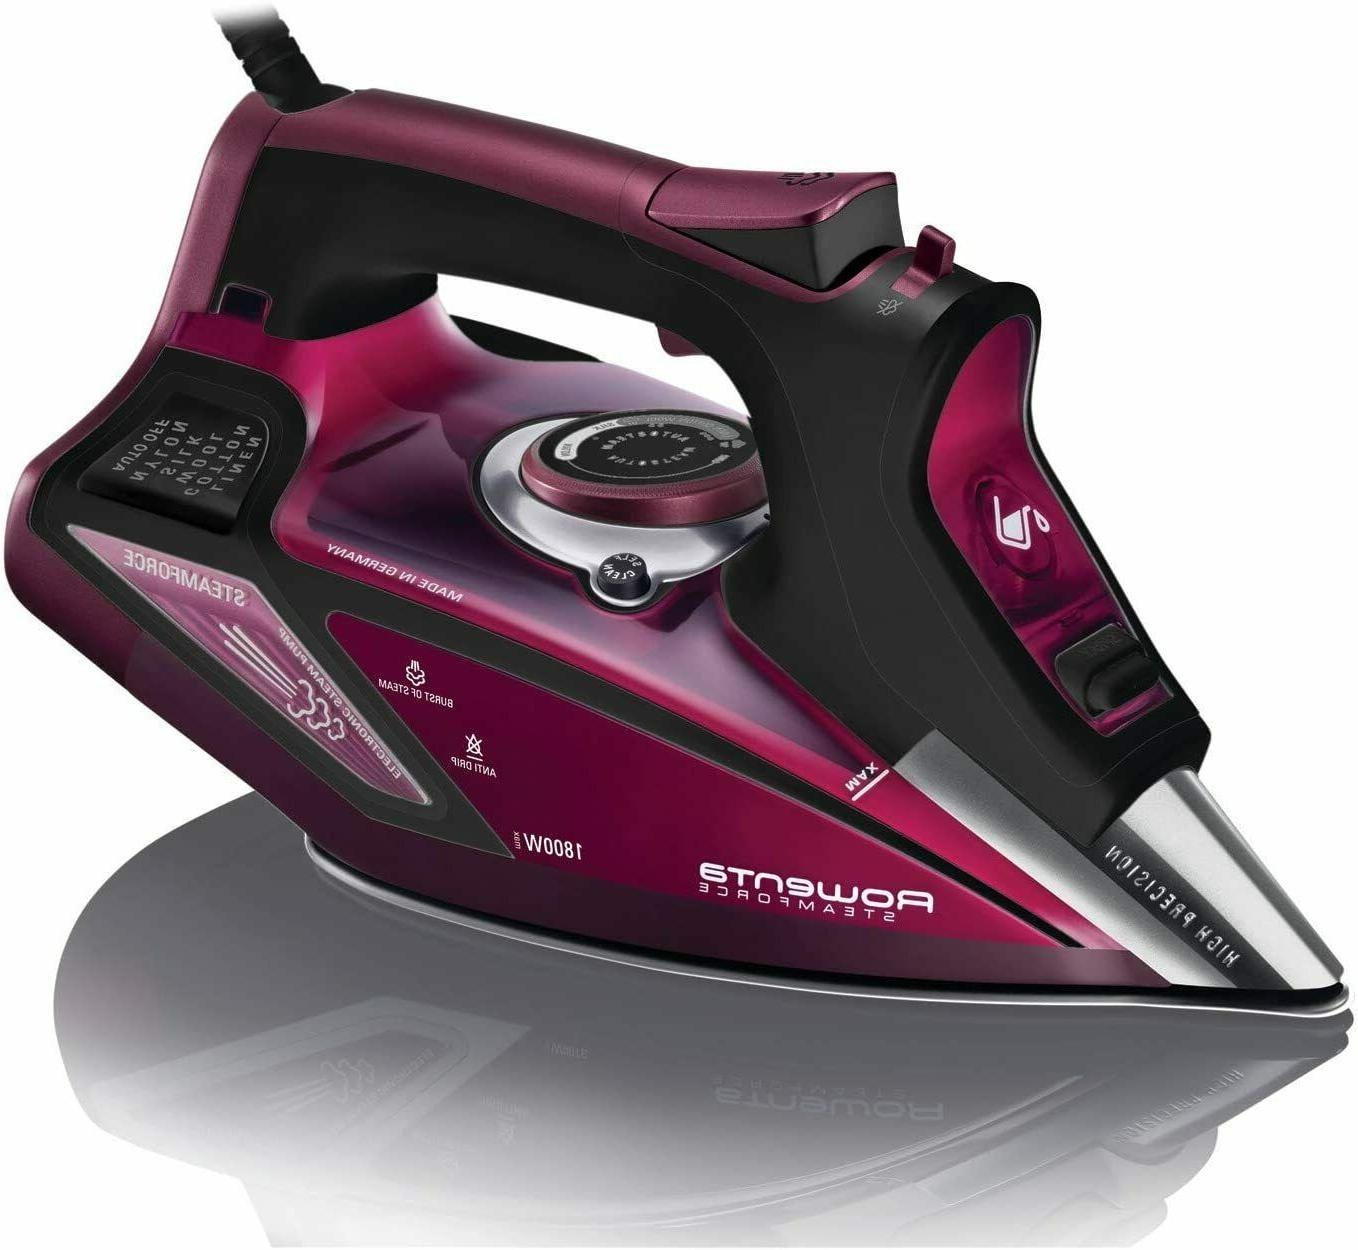 new steam irons with auto off anti